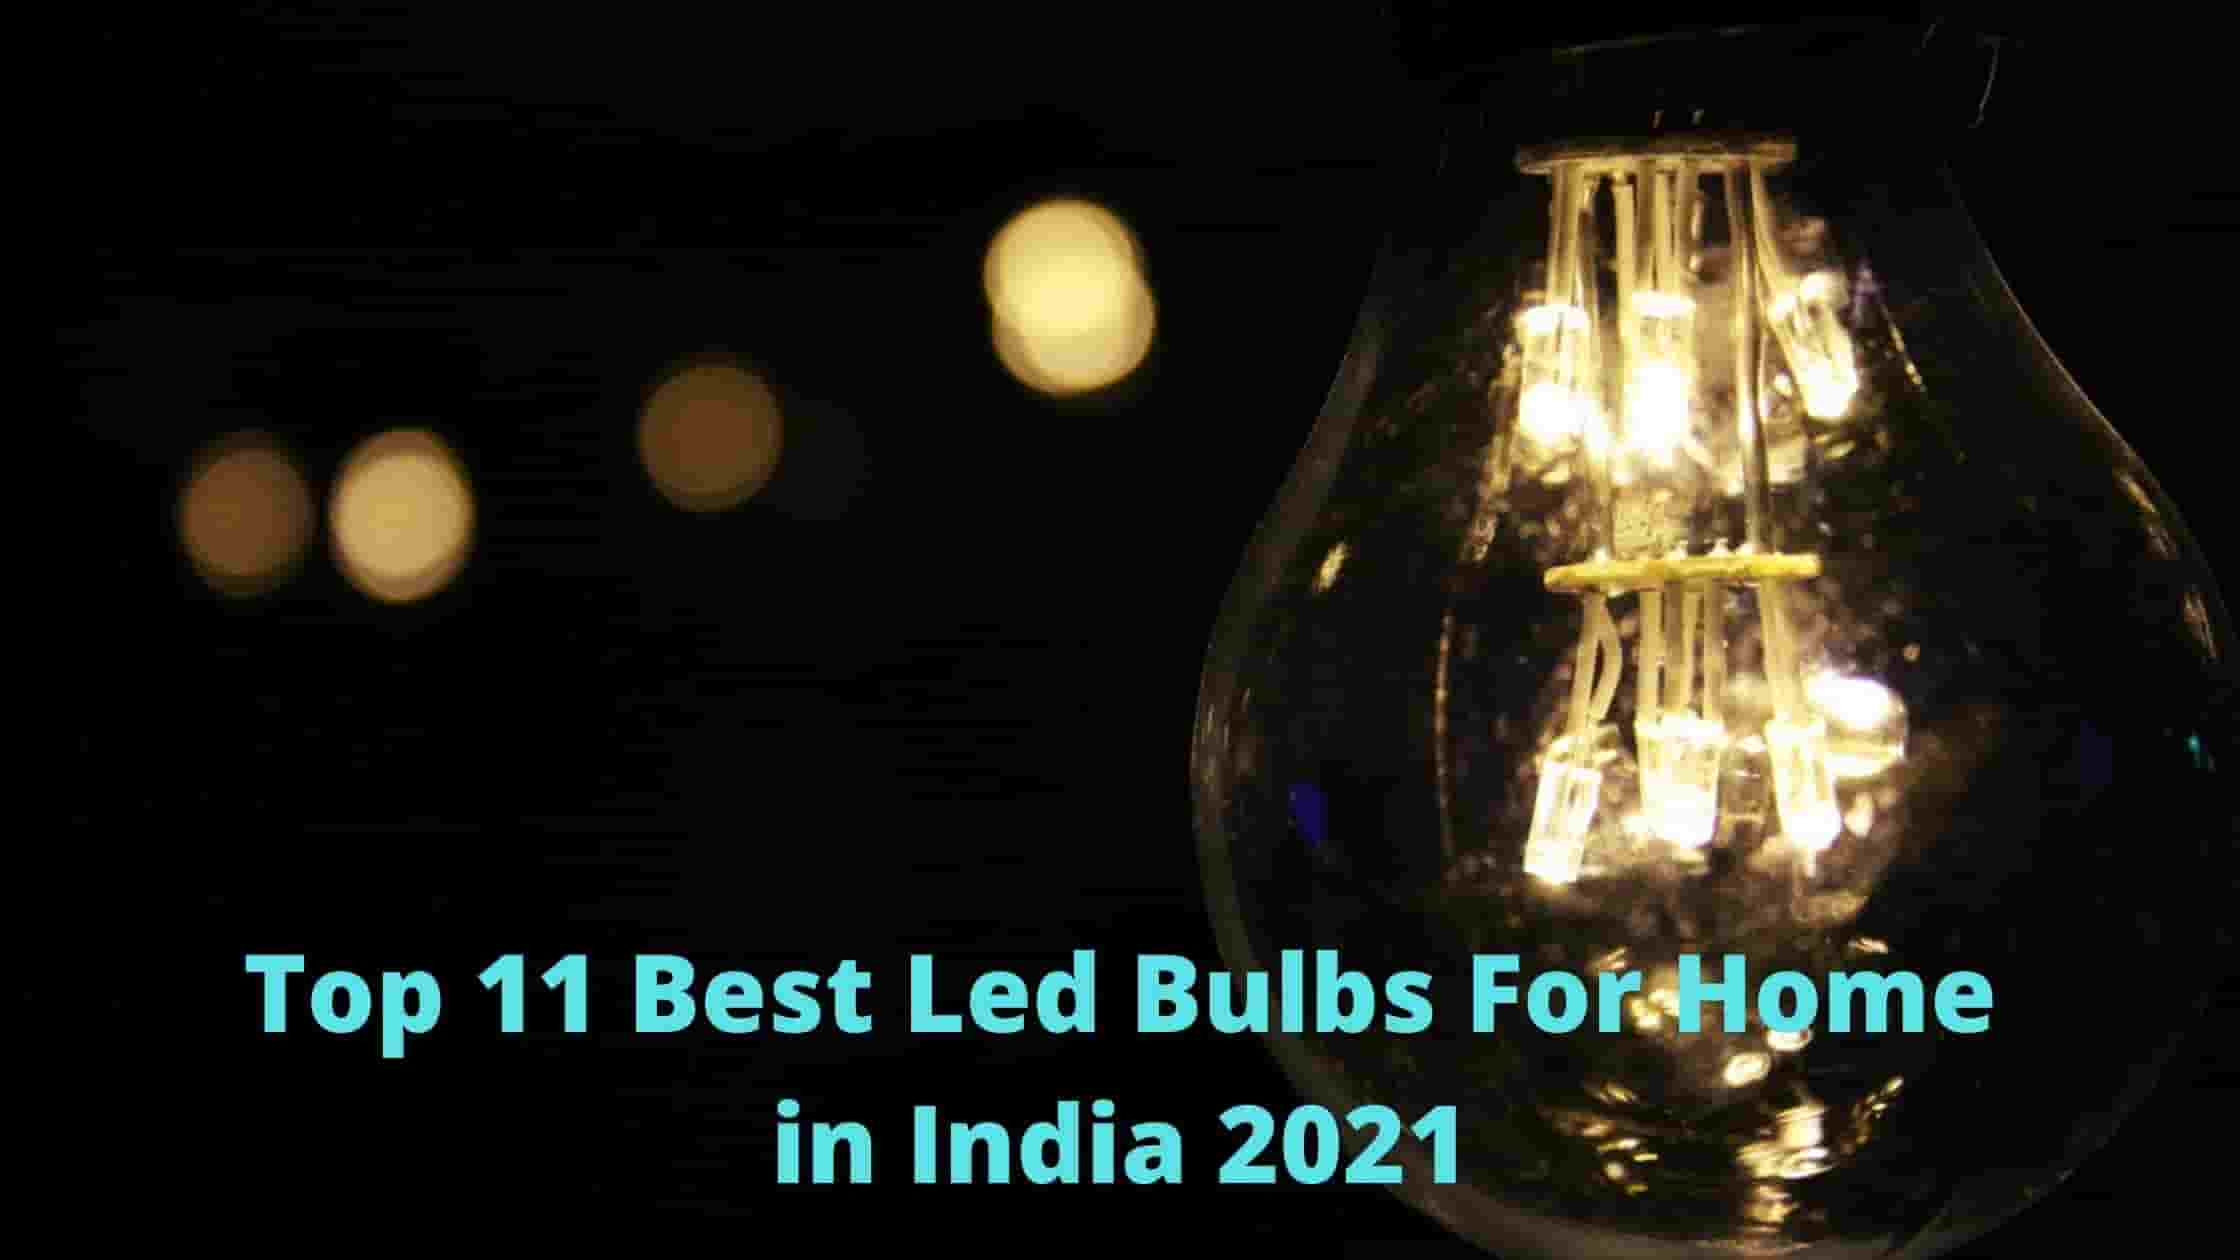 Now Top 11 Best Led Bulbs For Home in India 2021 [Bengali]